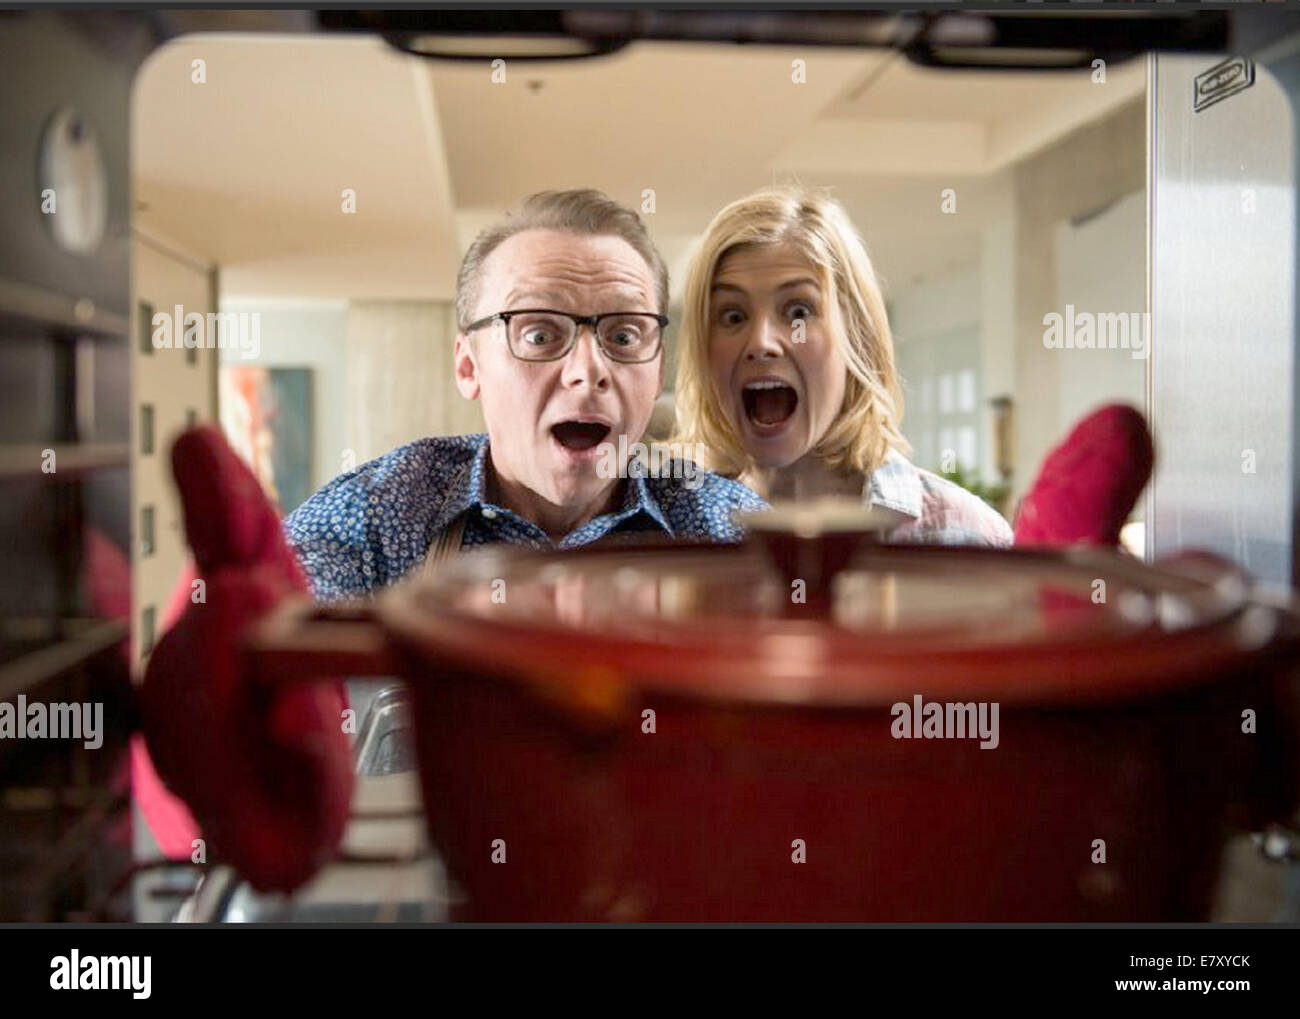 HECTOR AND THE SEARCH FOR HAPPINESS 2014 Egoli Tossell film with Rosamund Pike and Simon Pegg - Stock Image